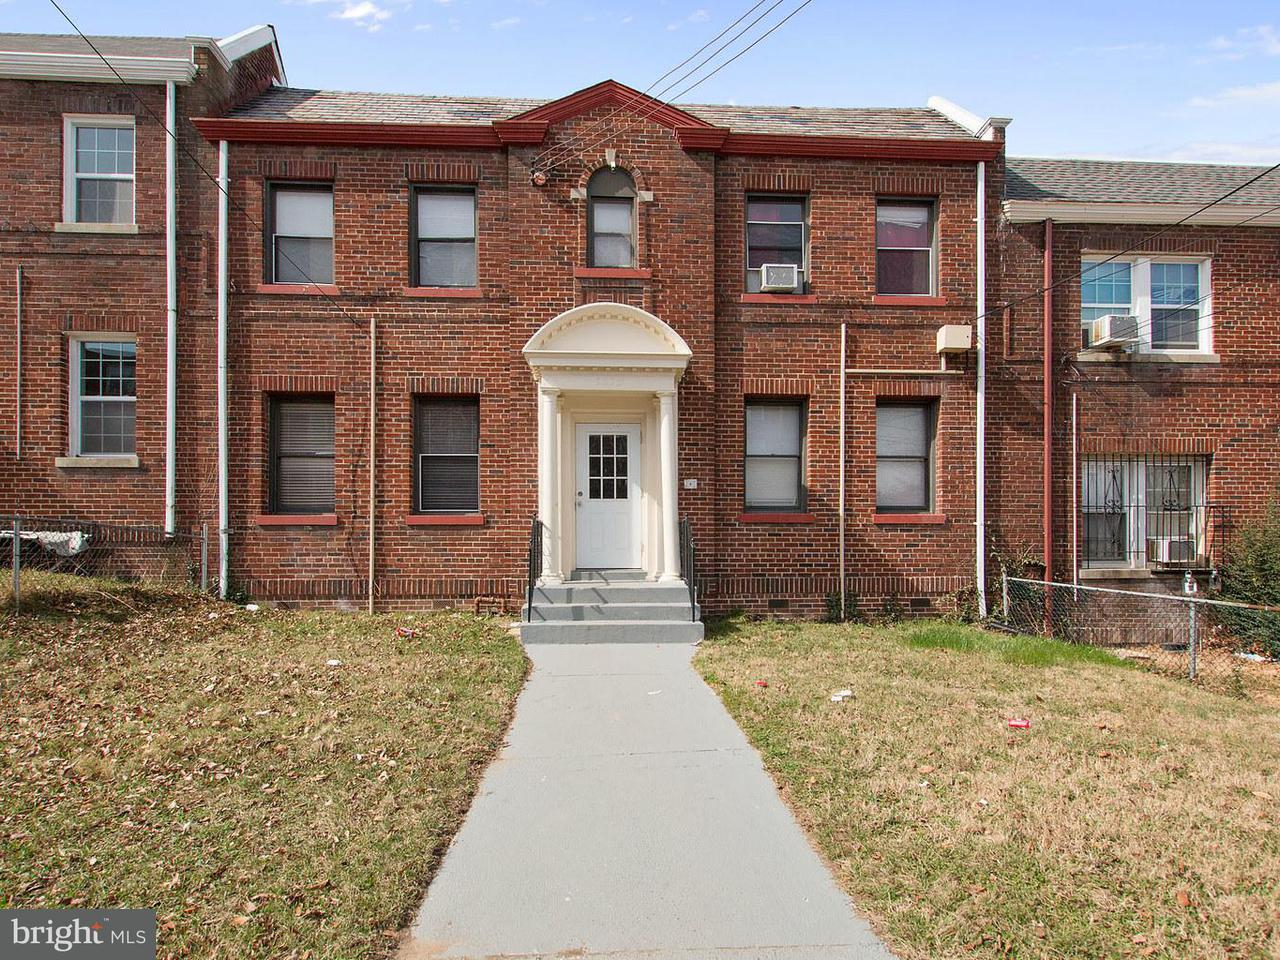 Multi-Family Home for Sale at 5020 2nd St Nw 5020 2nd St Nw Washington, District Of Columbia 20011 United States